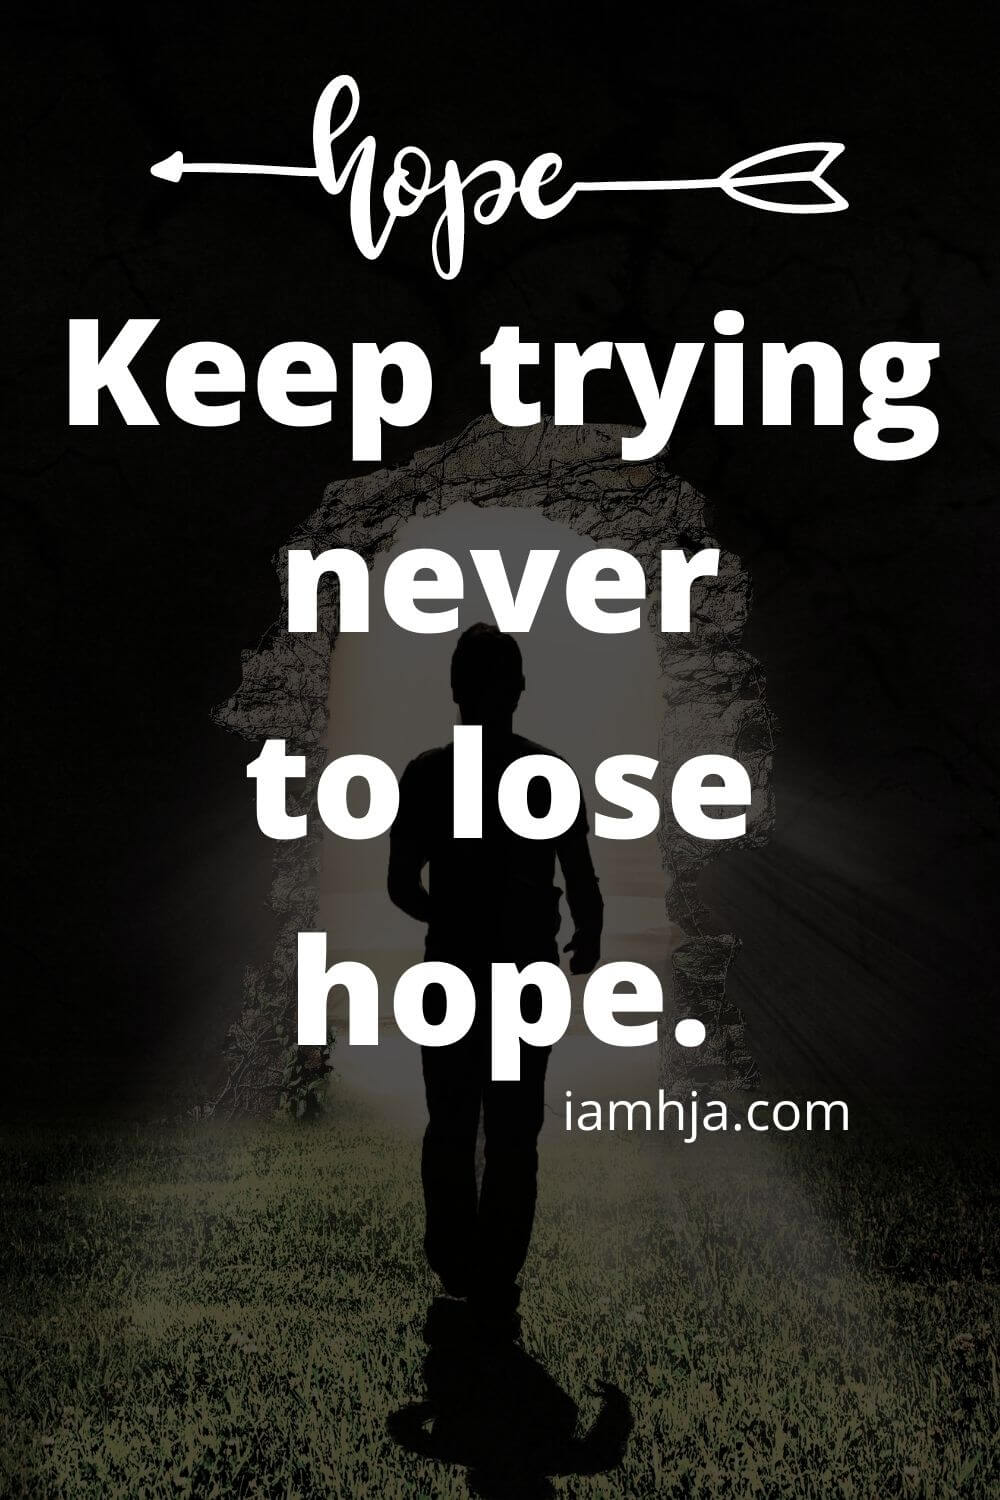 Keep trying never to lose hope